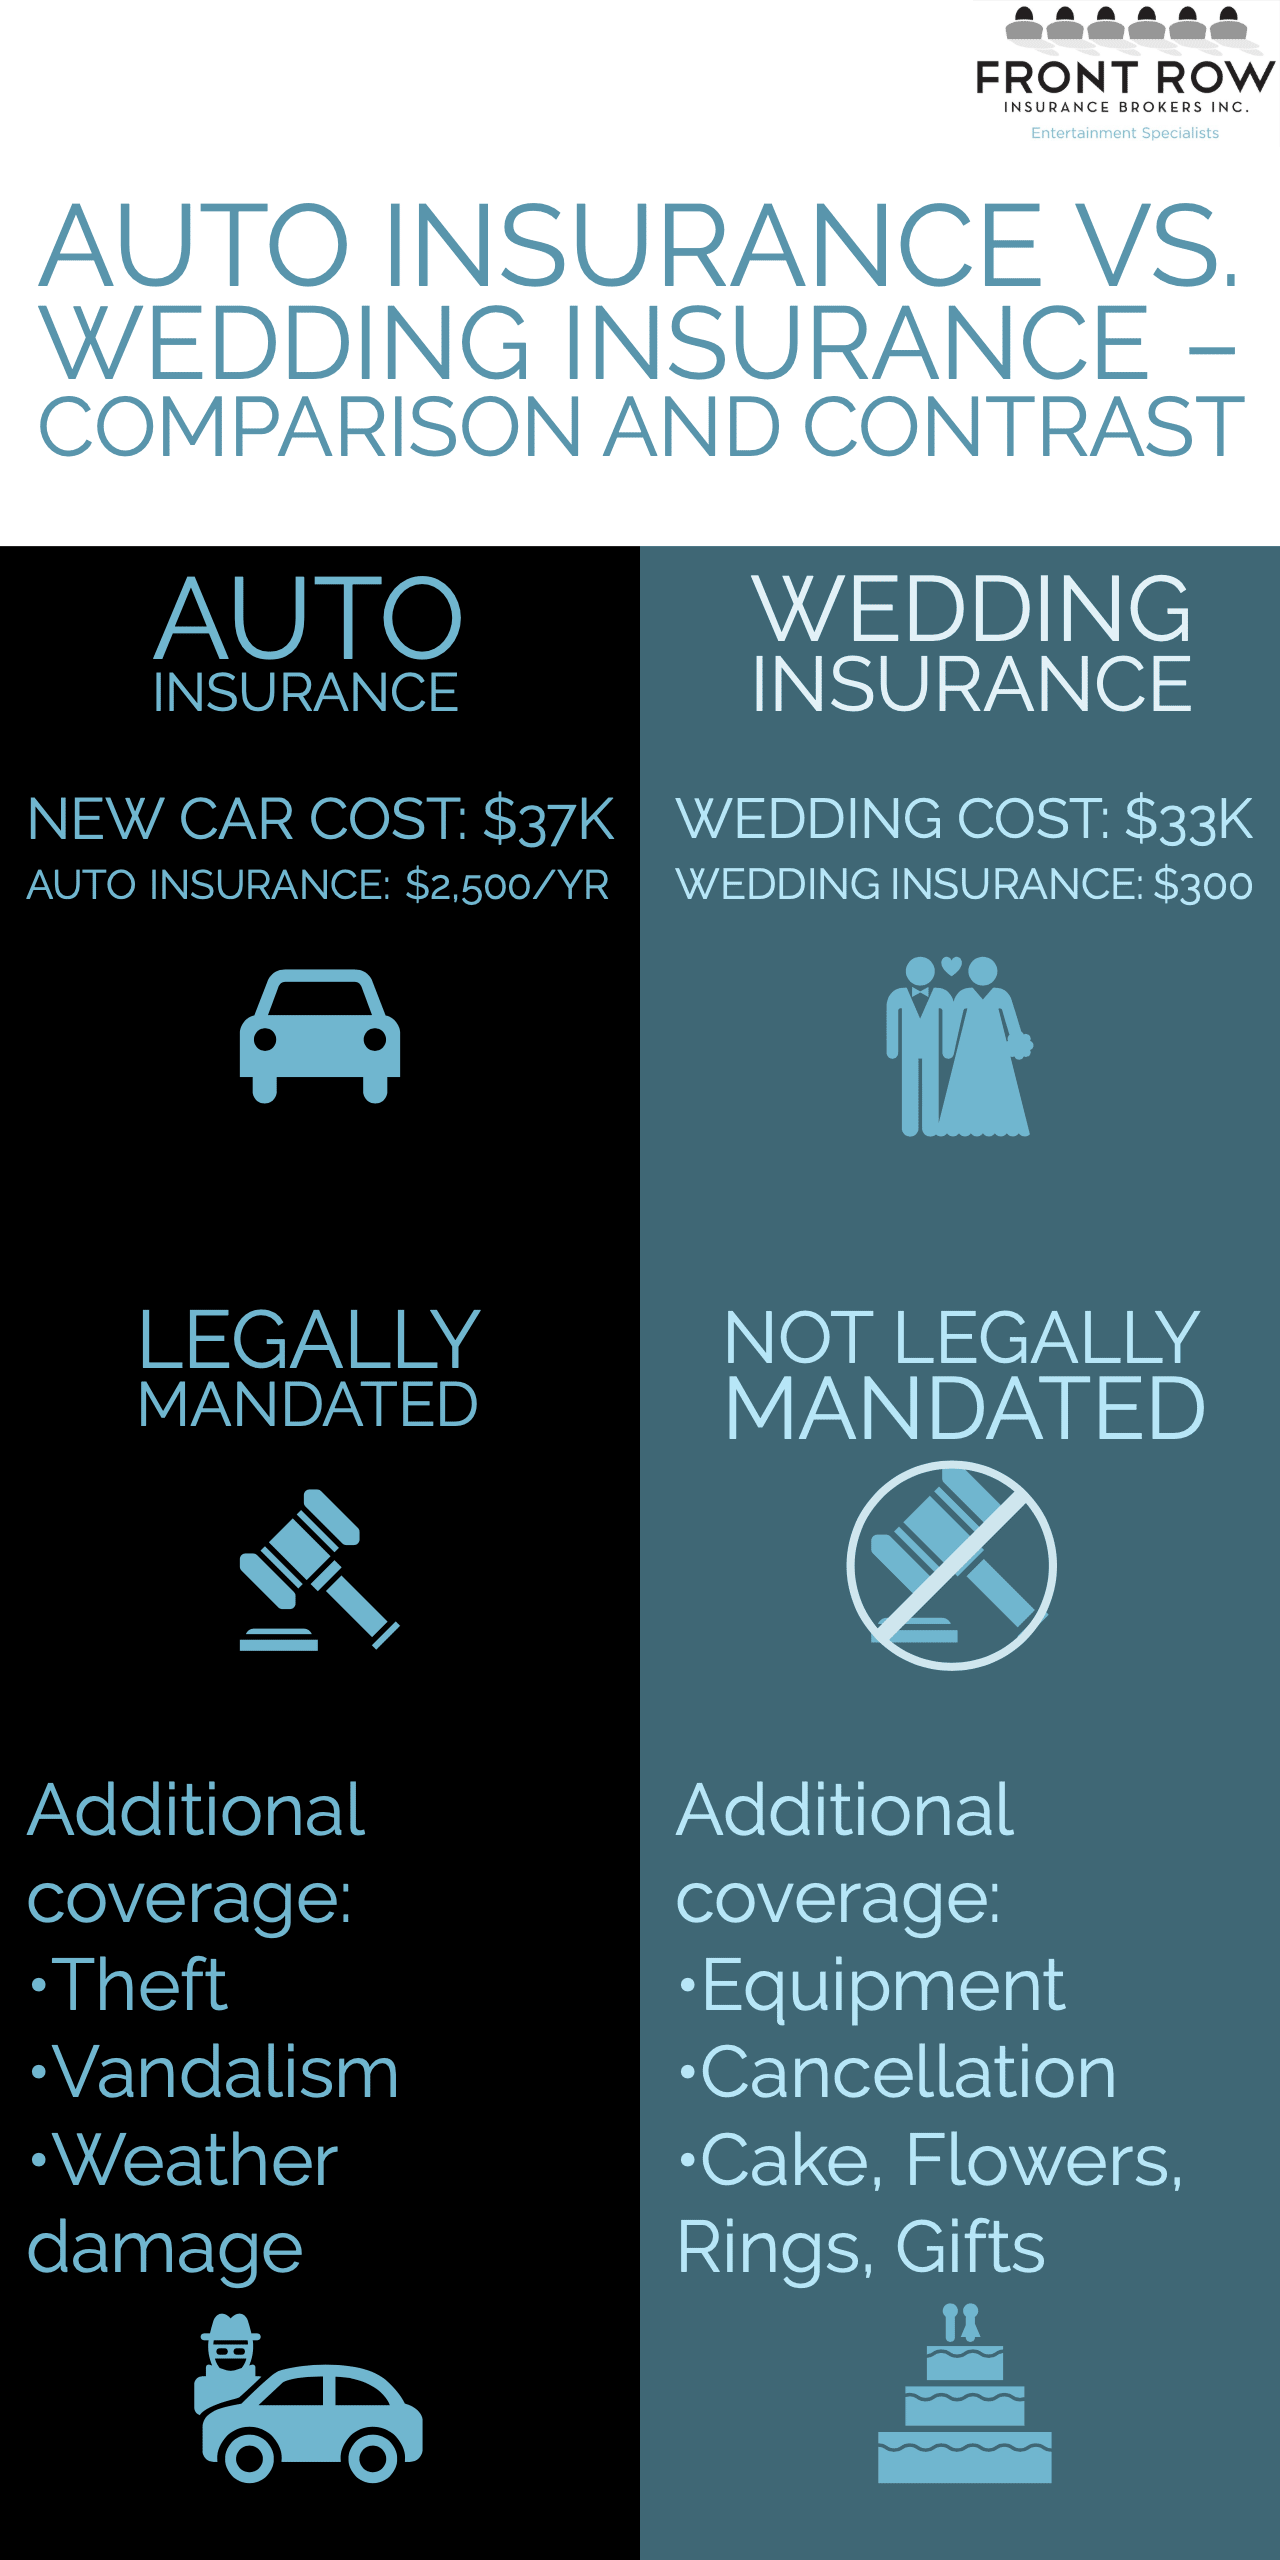 Auto-vs.-Wedding-infographic-forweb